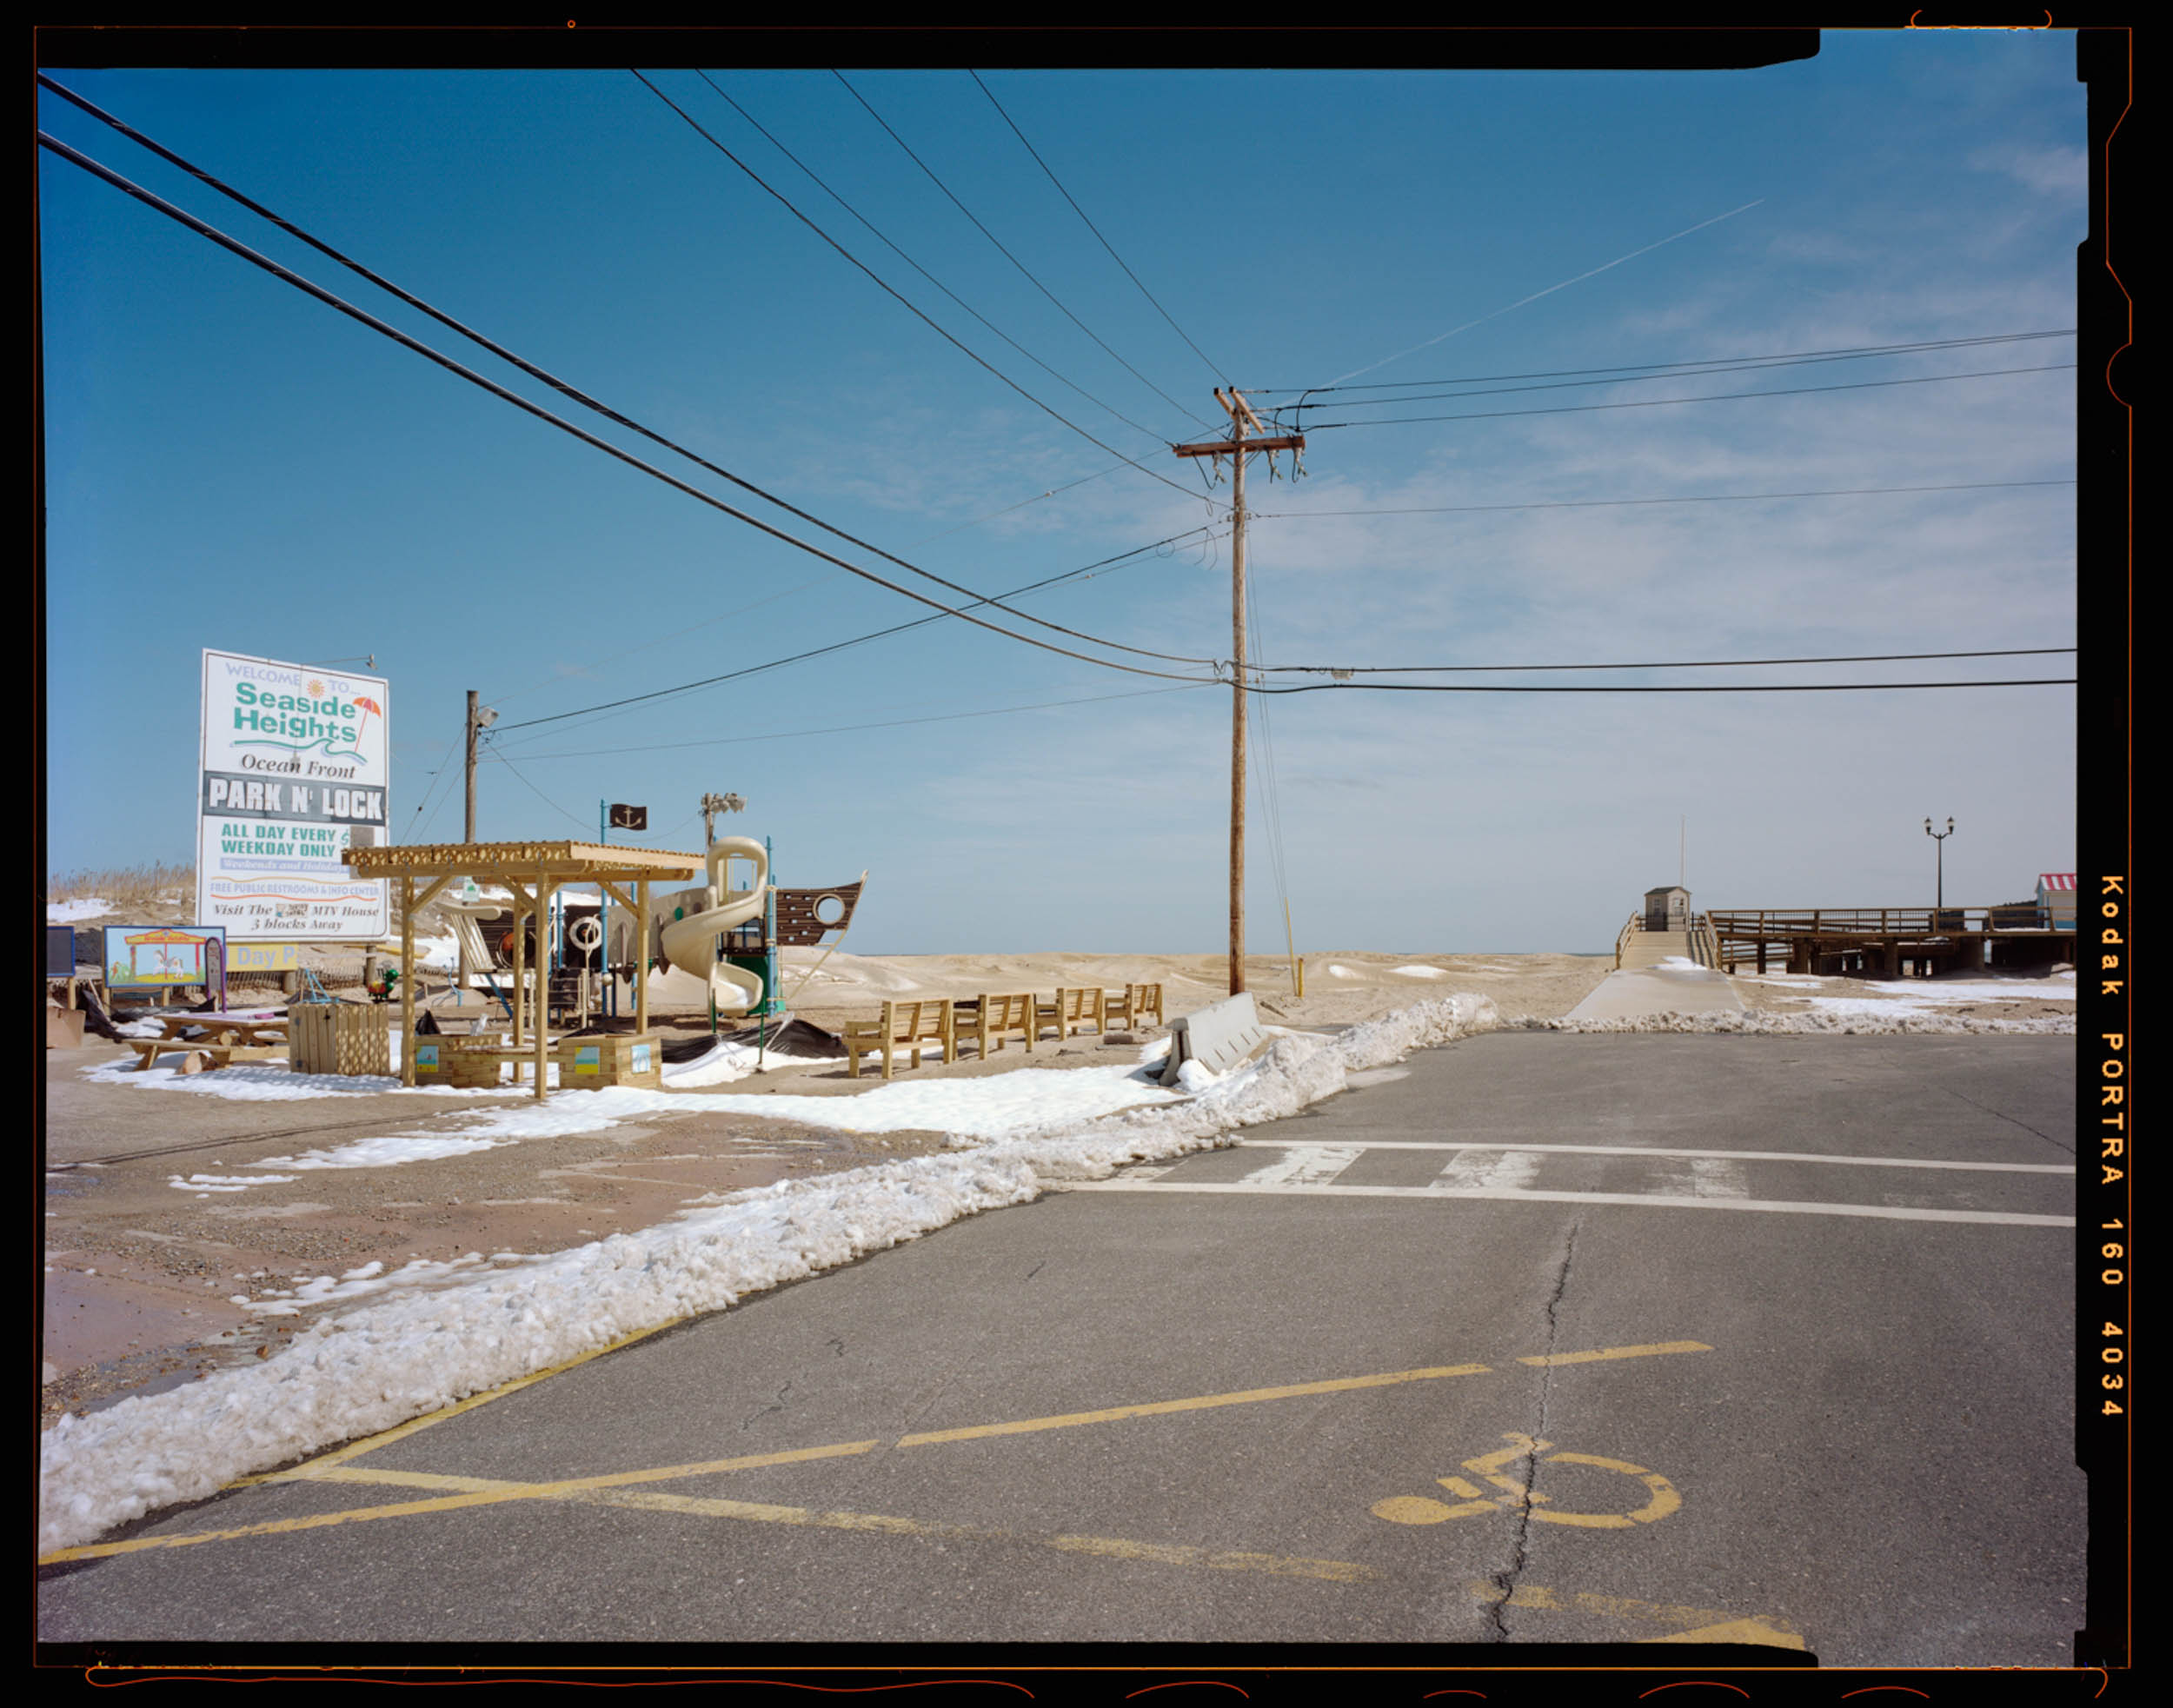 Park and Ride, Seaside, NJ. 2014. 4x5 Negative Shen-Hao    This photograph was the 3rd photograph I took for this entire project. It was right in December before I went back to school and started really getting this project rolling. This image anchors the entire symbolic meaning of the project. The kids' playground covered in snow with the bright sunny sign behind it. The entry of the boardwalk inviting you in with the telephone pole splitting the entire image. The North end of the boardwalk being re-built. The dunes pushed up to boardwalk in the background from the hurricane. The handy cap symbol foreshadowing the state of the boardwalk.